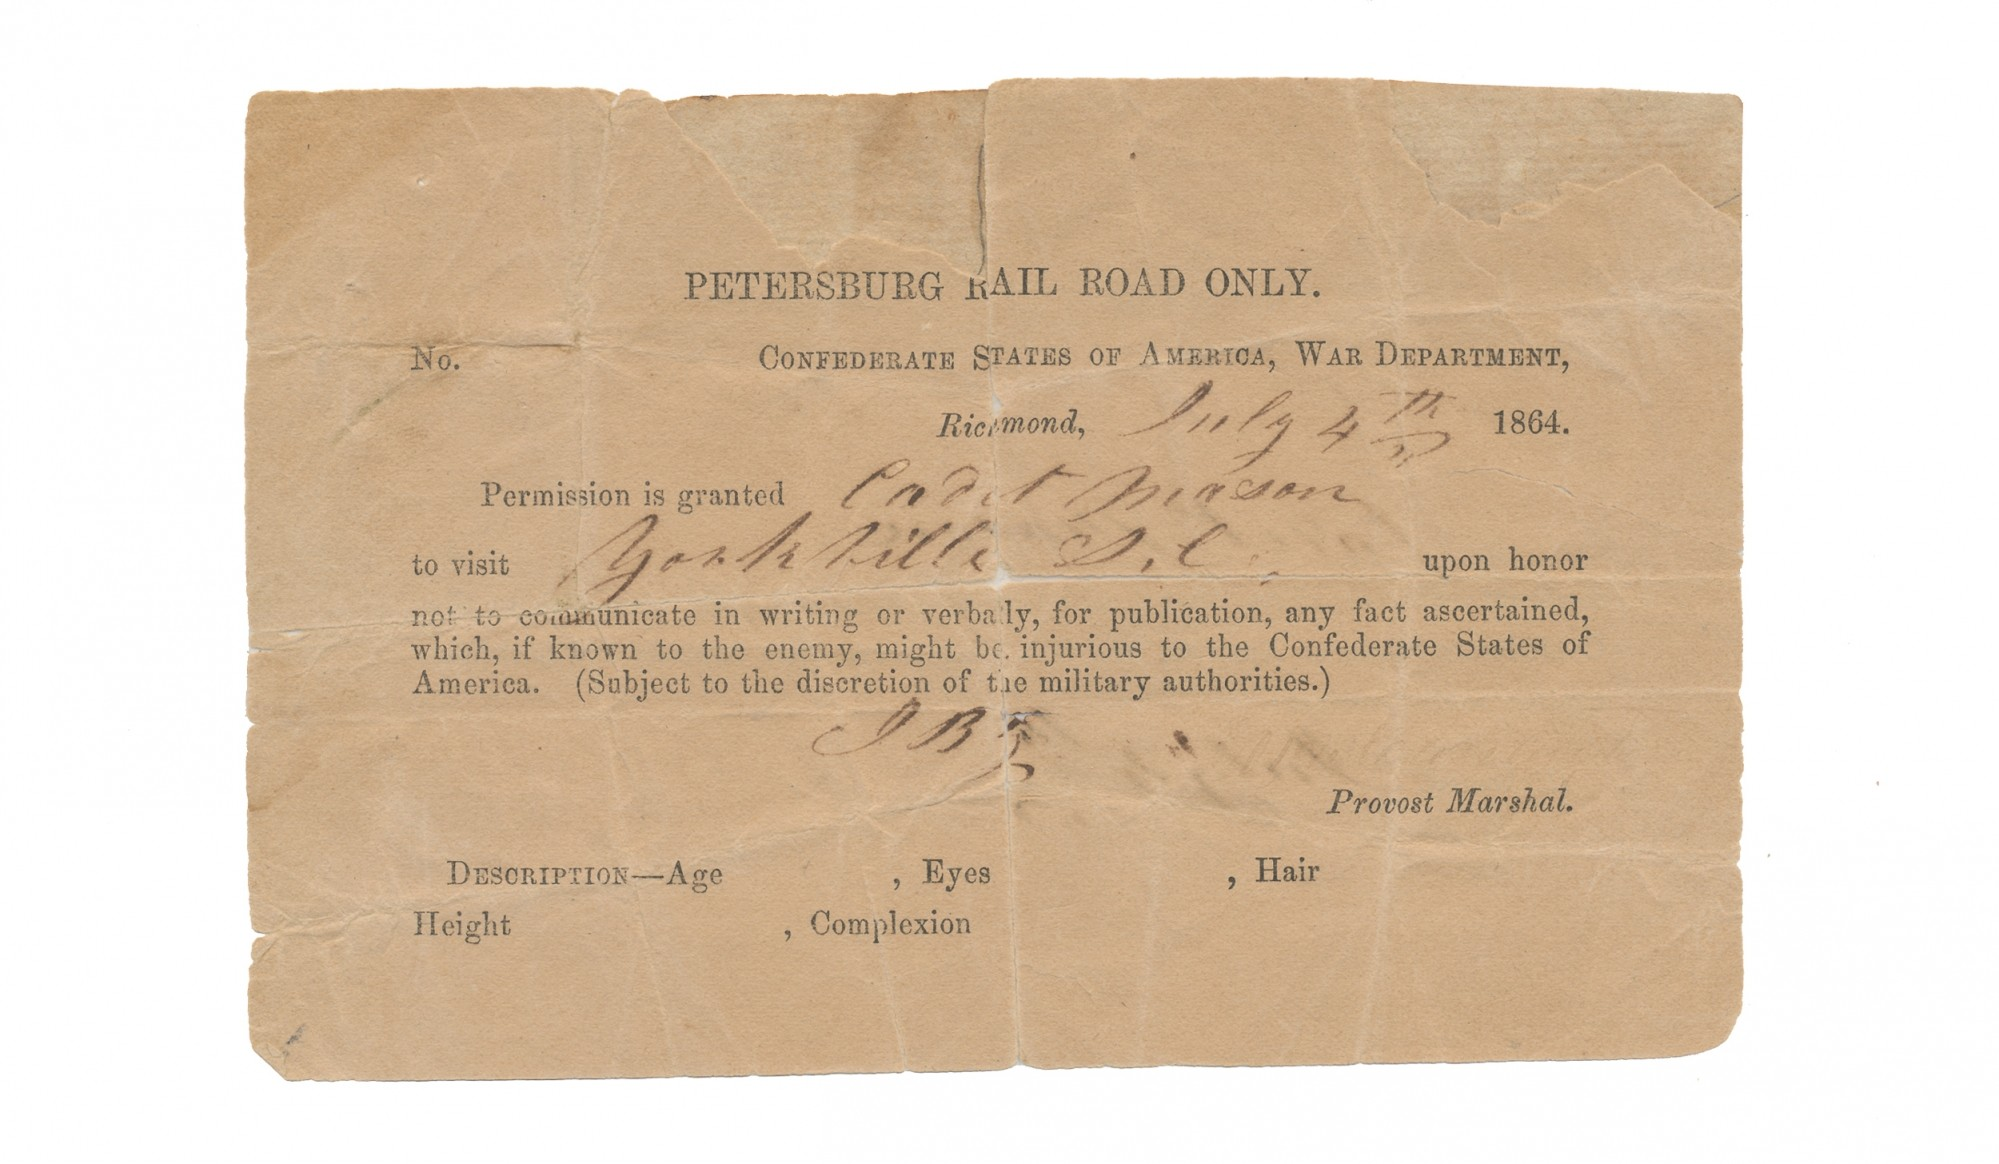 1864 PETERSBURG RAIL ROAD PASS ISSUED BY CONFEDERATE WAR DEPARTMENT